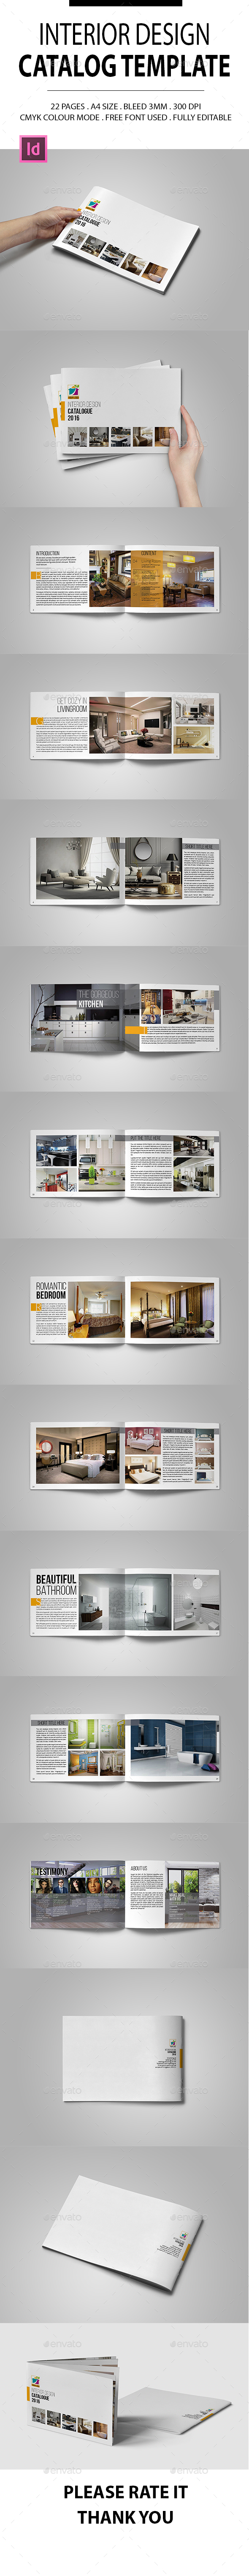 Interior Design Catalog Template - Catalogs Brochures